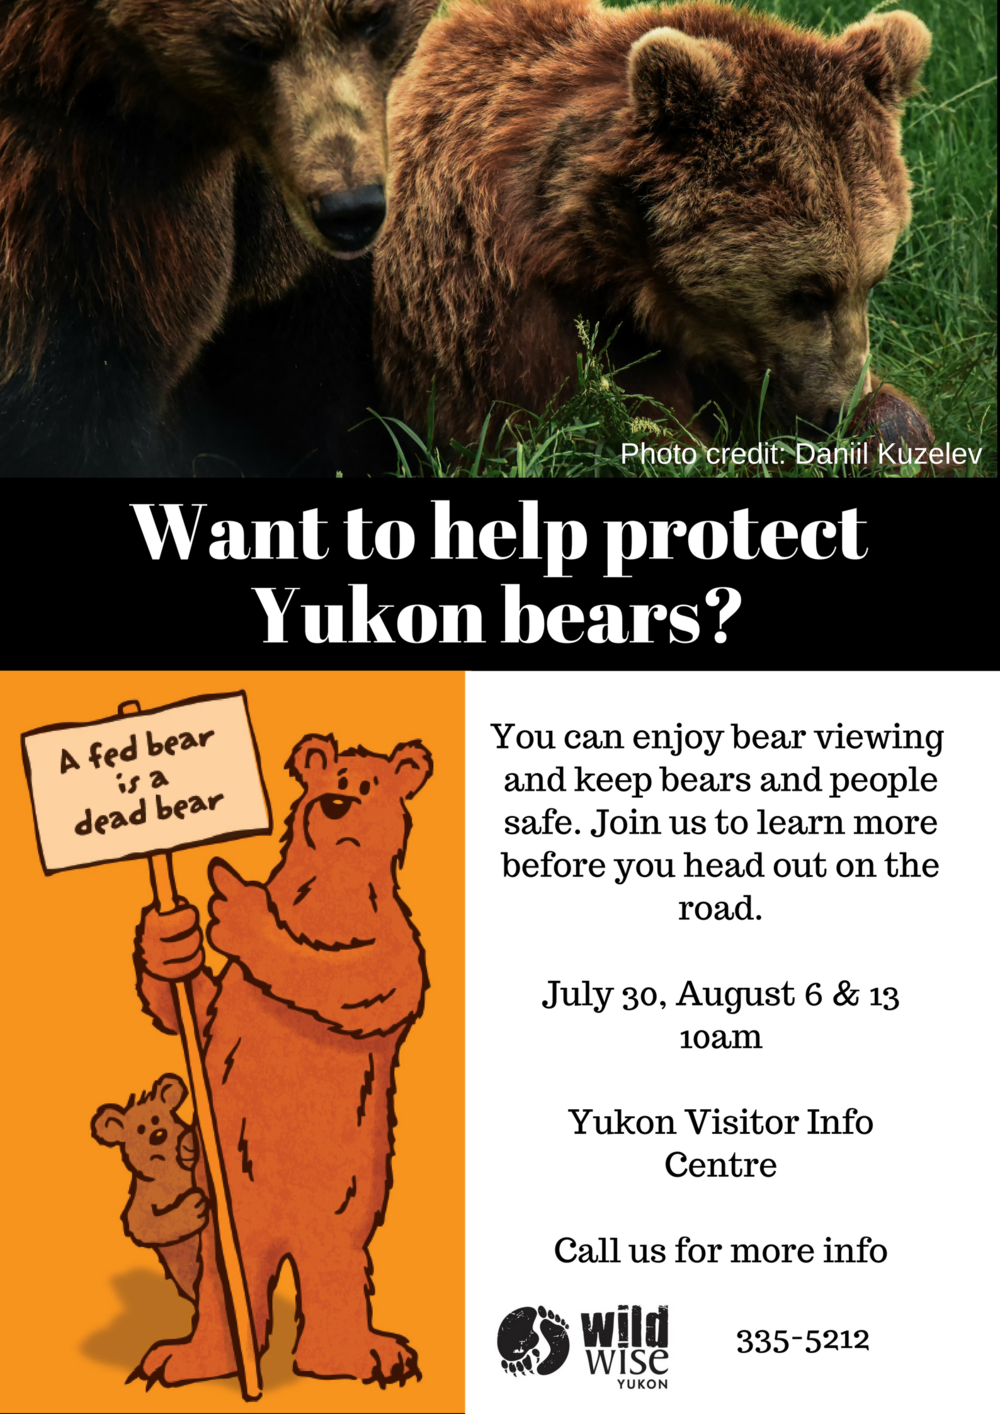 Info for visitors  - Are you travelling to the Yukon this summer? Whether you're traveling by road, river or hiking through the back country you are likely to see bears. Come to the Yukon Visitor's Information Centre at 100 Hanson Street, Mondays at 10am to find out how to travel safely and protect bears. WildWise will be on site to answer questions, demonstrate use of bear spray and give tips and suggestions for managing garbage and bear encounters.